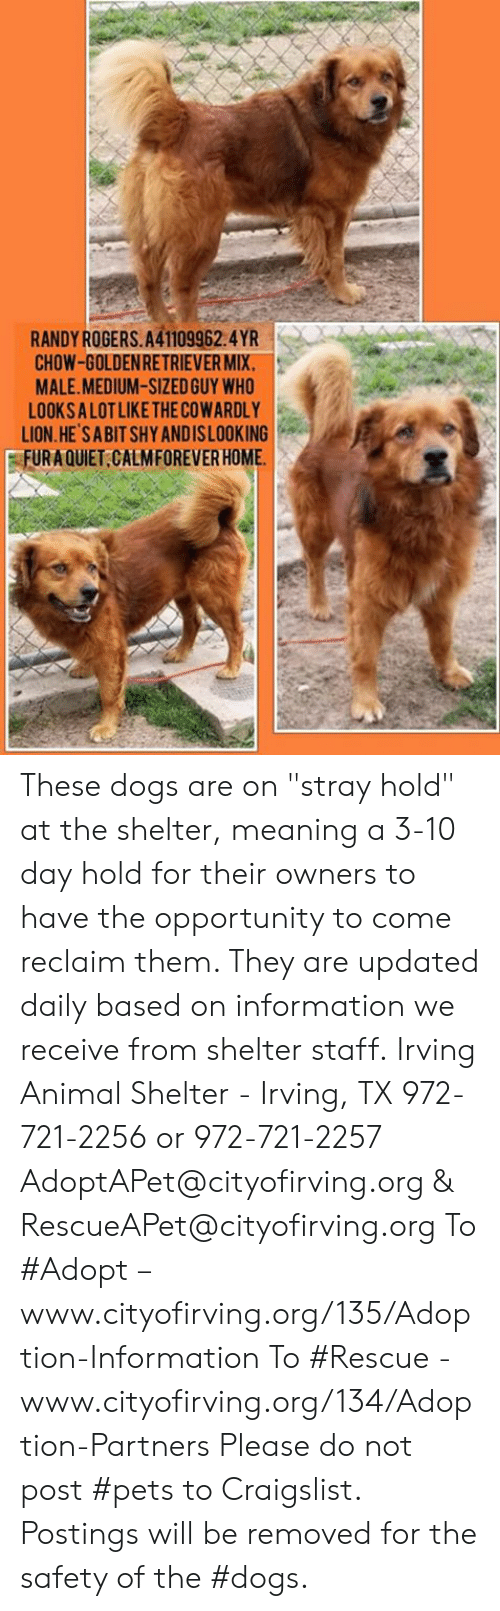 """Craigslist, Dogs, and Memes: RANDYROGERS.A41109962.4YR  CHOW-GOLDENRETRIEVER MIX.  MALE.MEDIUM-SIZED GUY WHO  LOOKSA LOT LIKE THE COWARDLY  LION.HE SABIT SHY ANDISLOOKING  FURAQUIET CALMFOREVER HOME These dogs are on """"stray hold"""" at the shelter, meaning a 3-10 day hold for their owners to have the opportunity to come reclaim them. They are updated daily based on information we receive from shelter staff.  Irving Animal Shelter - Irving, TX 972-721-2256 or 972-721-2257 AdoptAPet@cityofirving.org & RescueAPet@cityofirving.org  To #Adopt – www.cityofirving.org/135/Adoption-Information   To #Rescue - www.cityofirving.org/134/Adoption-Partners   Please do not post #pets to Craigslist. Postings will be removed for the safety of the #dogs."""